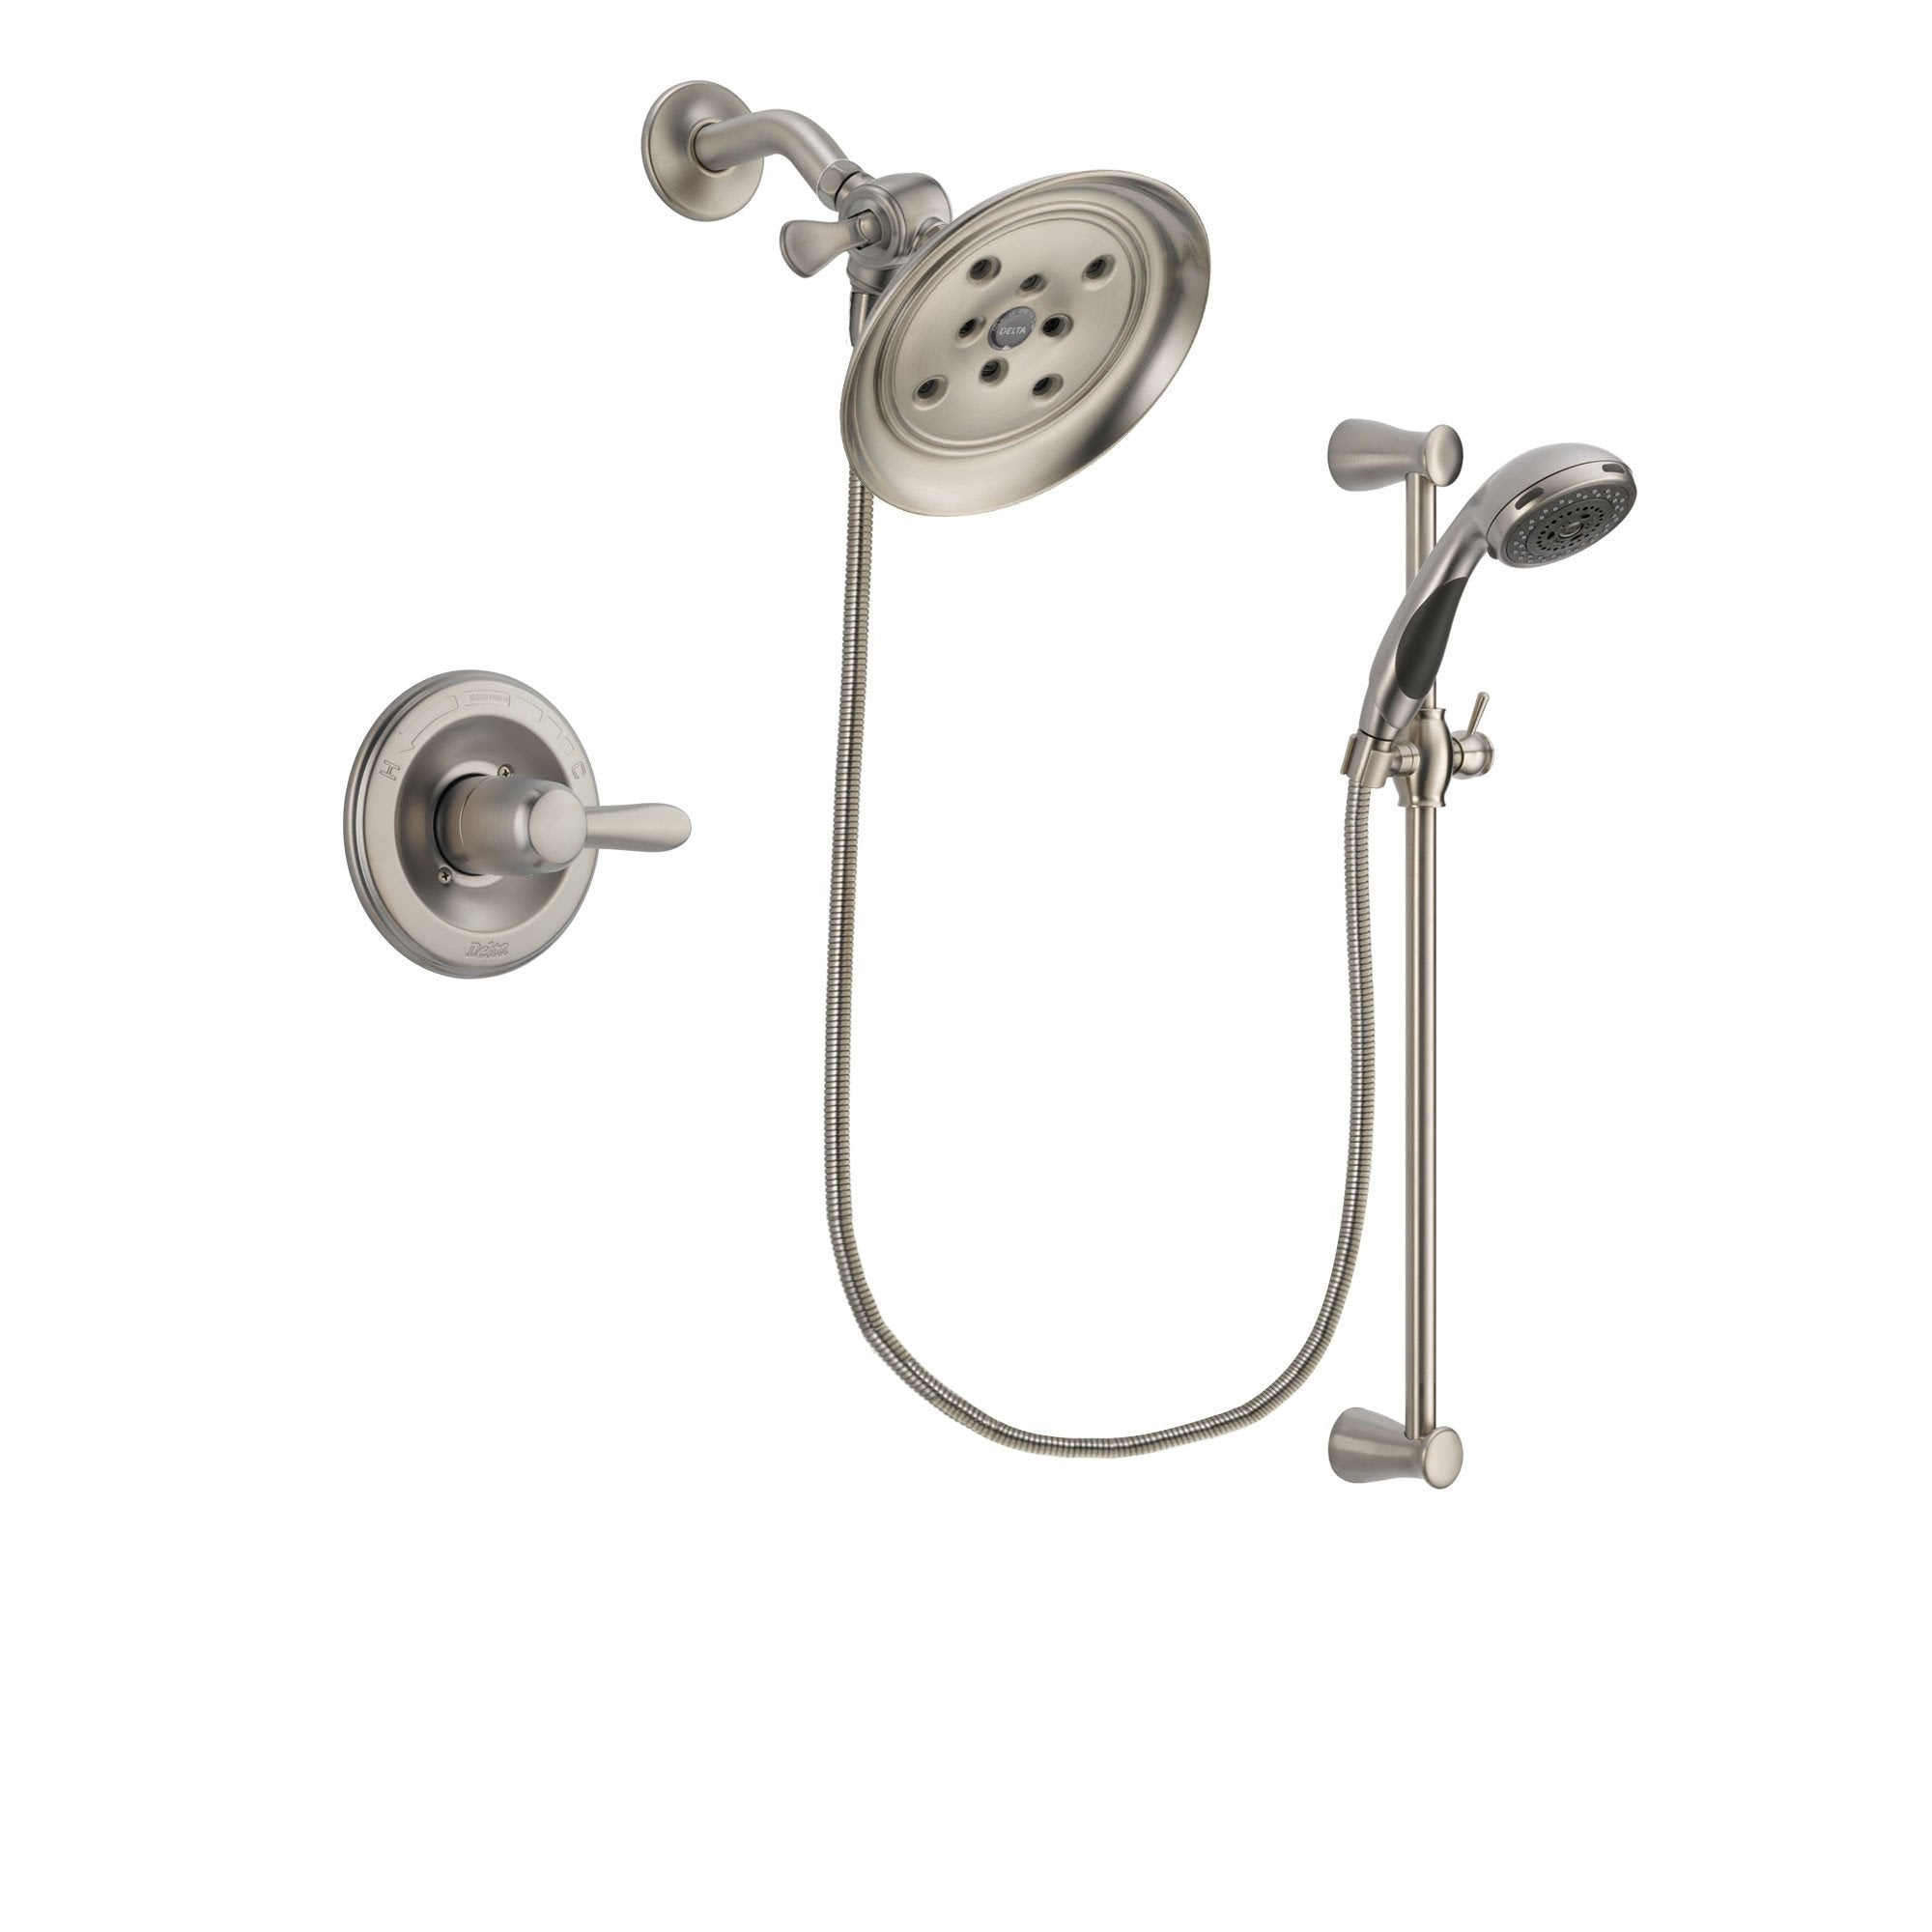 Delta Lahara Stainless Steel Finish Shower Faucet System w/ Hand Spray DSP1592V